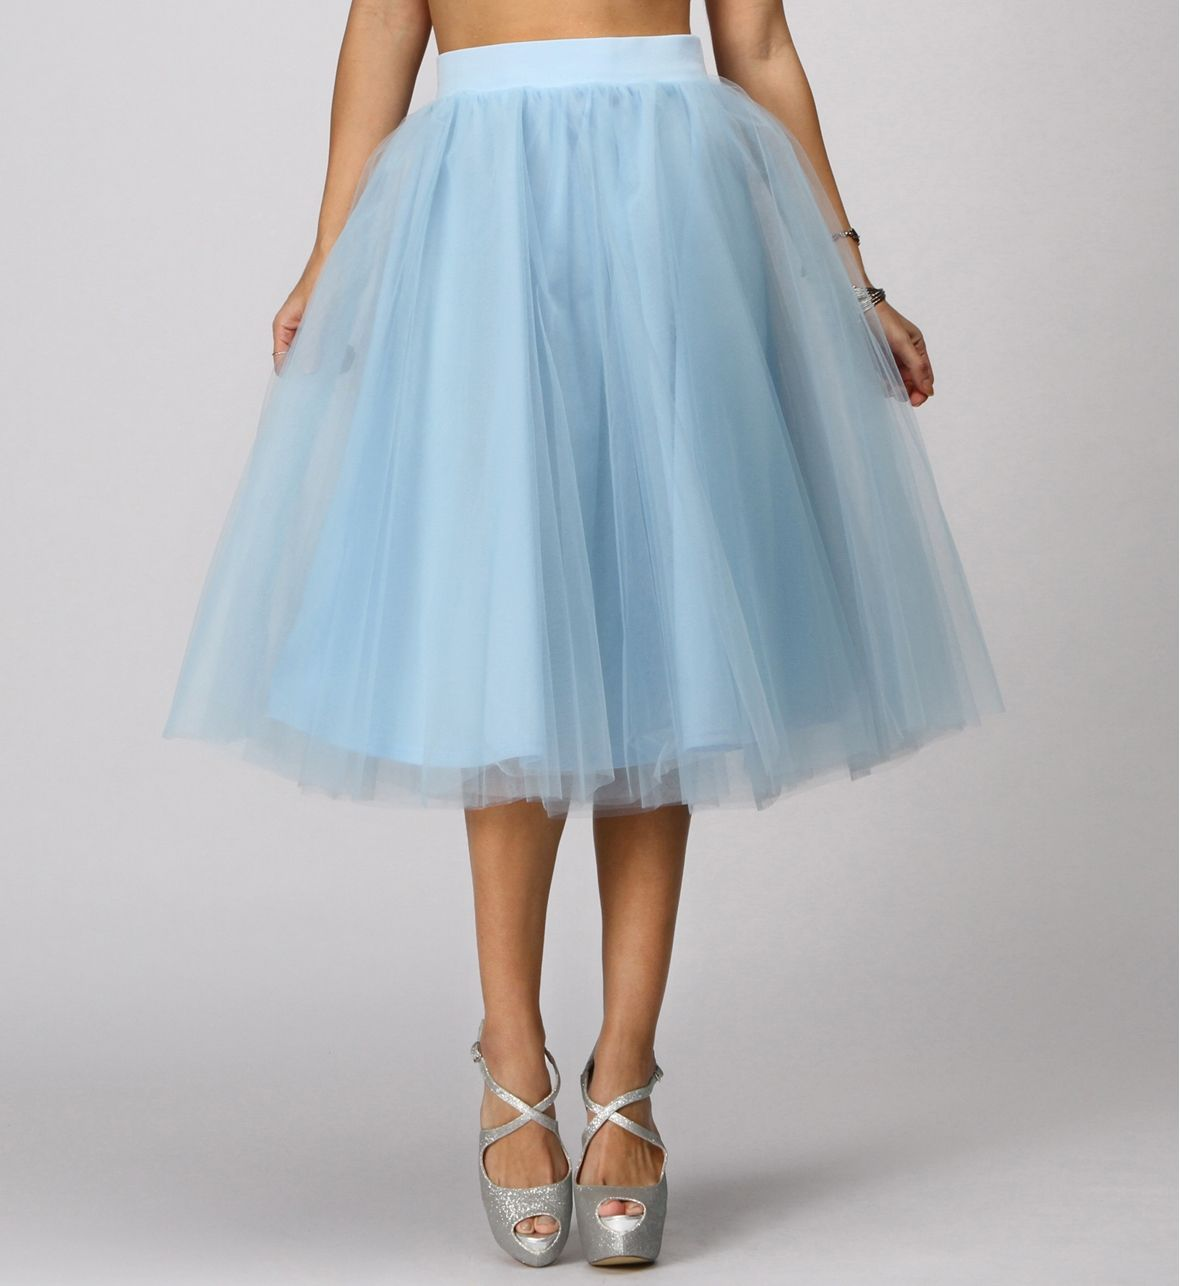 SALE- Light Blue Tulle Midi Skirt | All dressed up | Pinterest ...